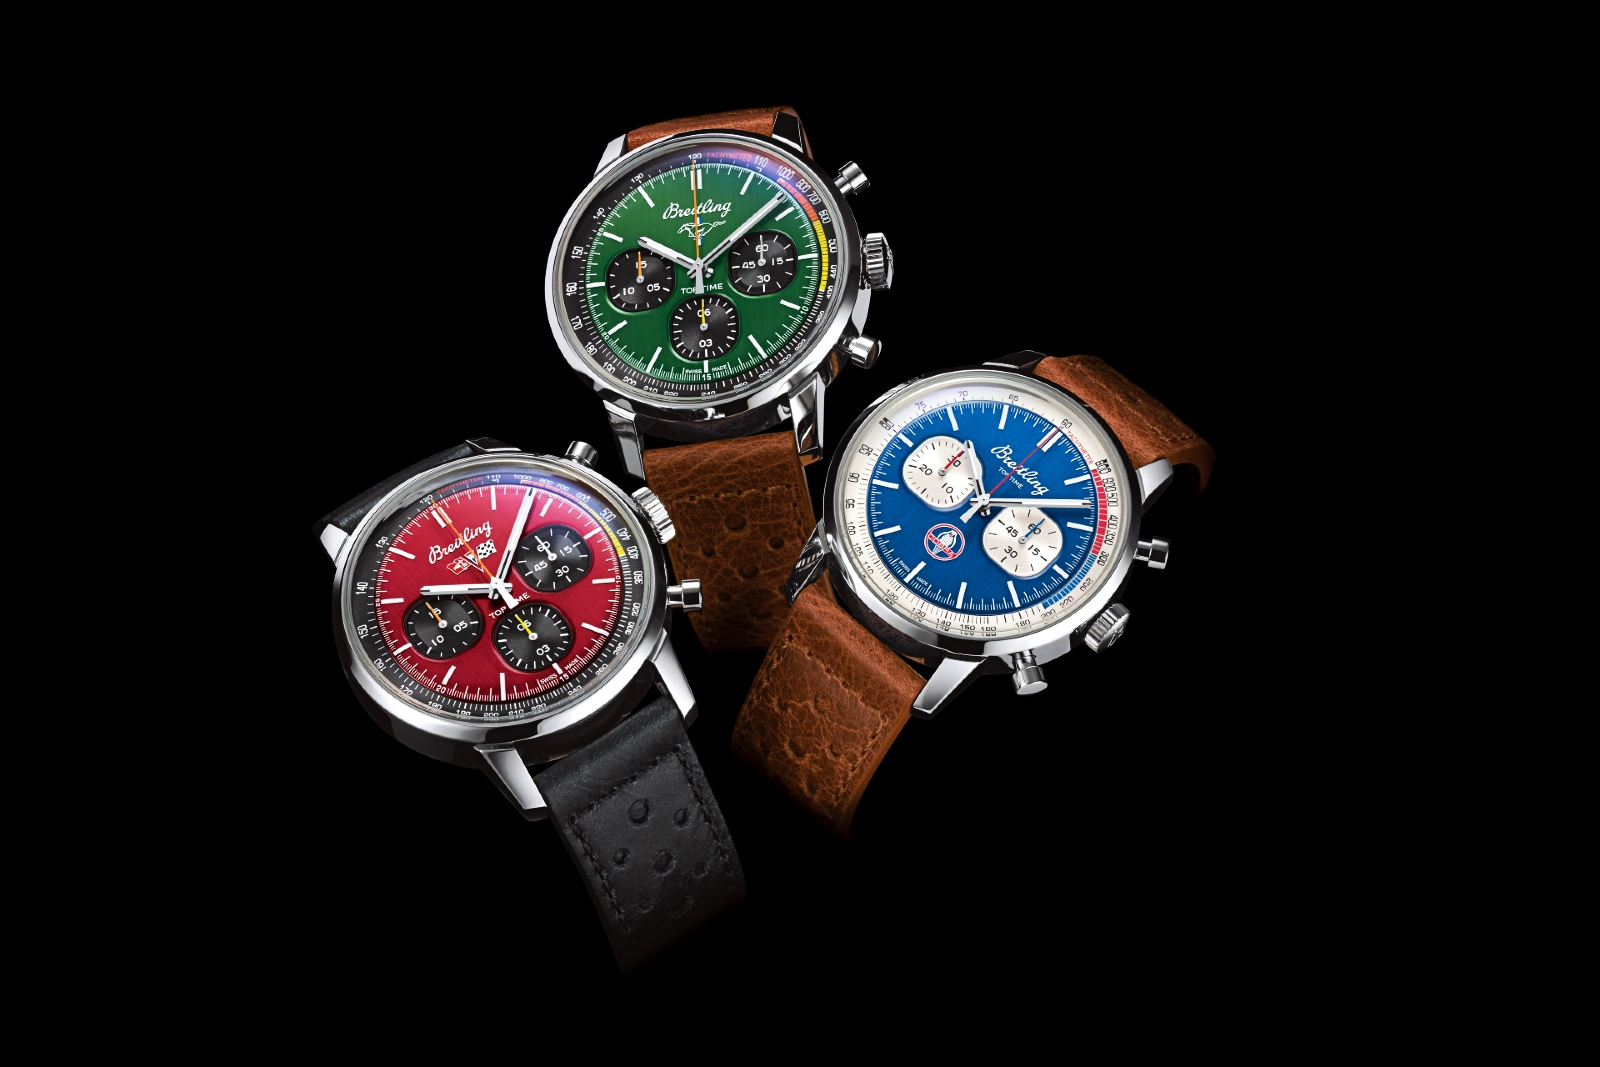 02 breitling top time classic cars capsule collection rgb